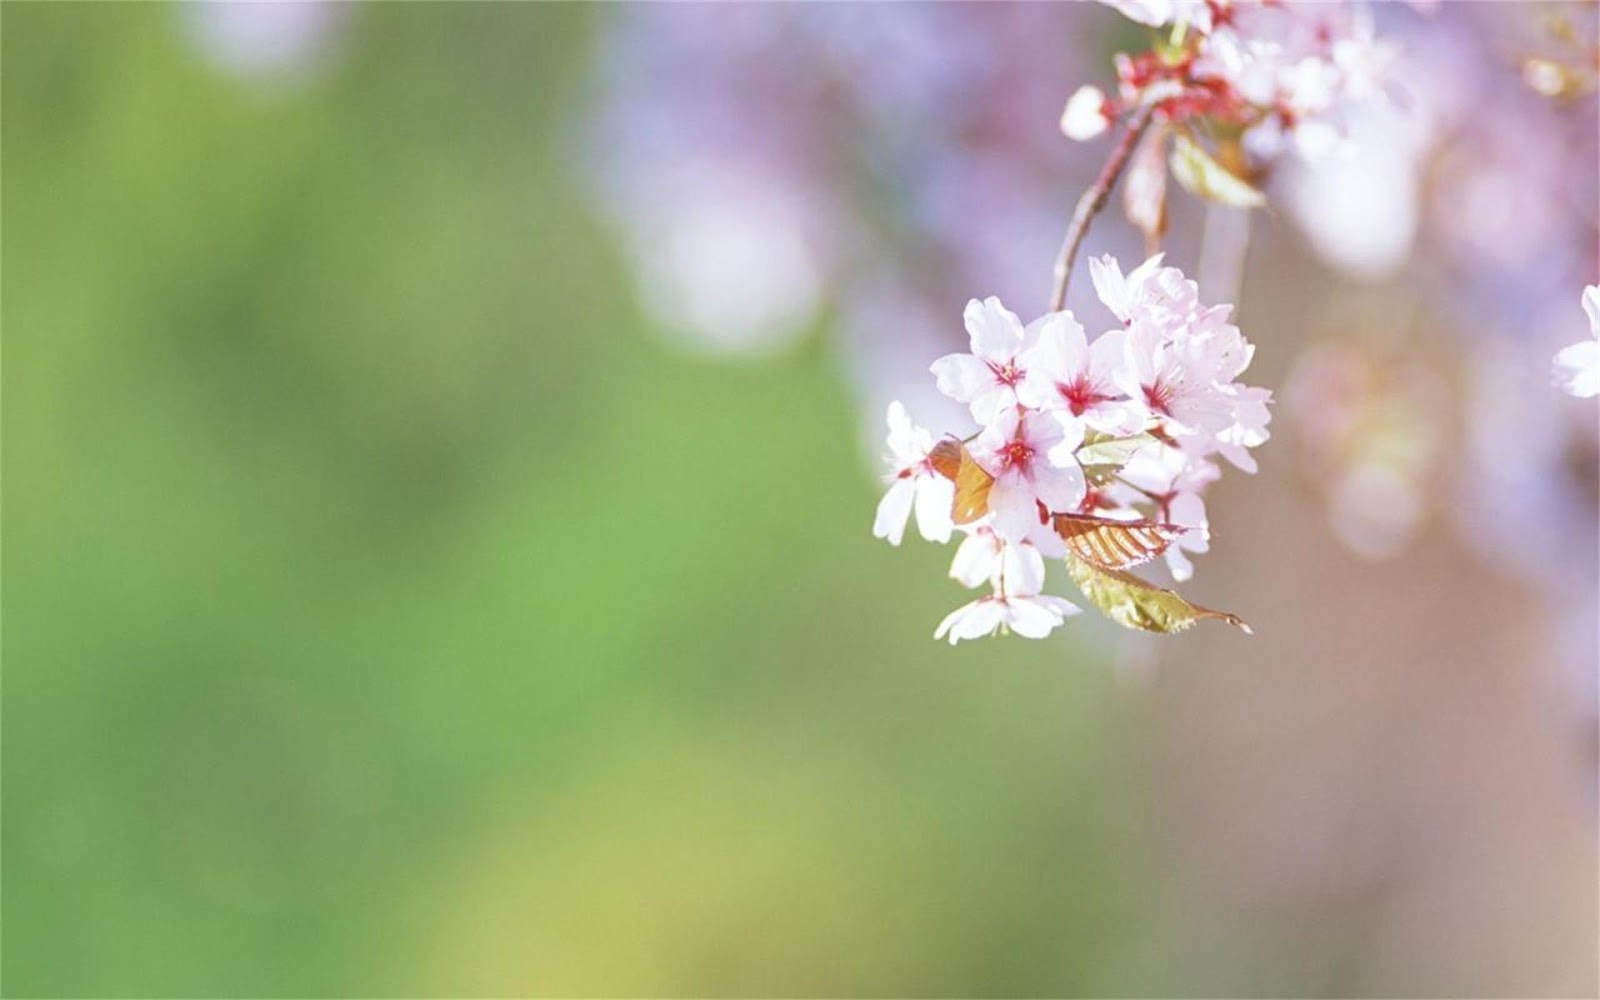 Peach blossom light PPT background